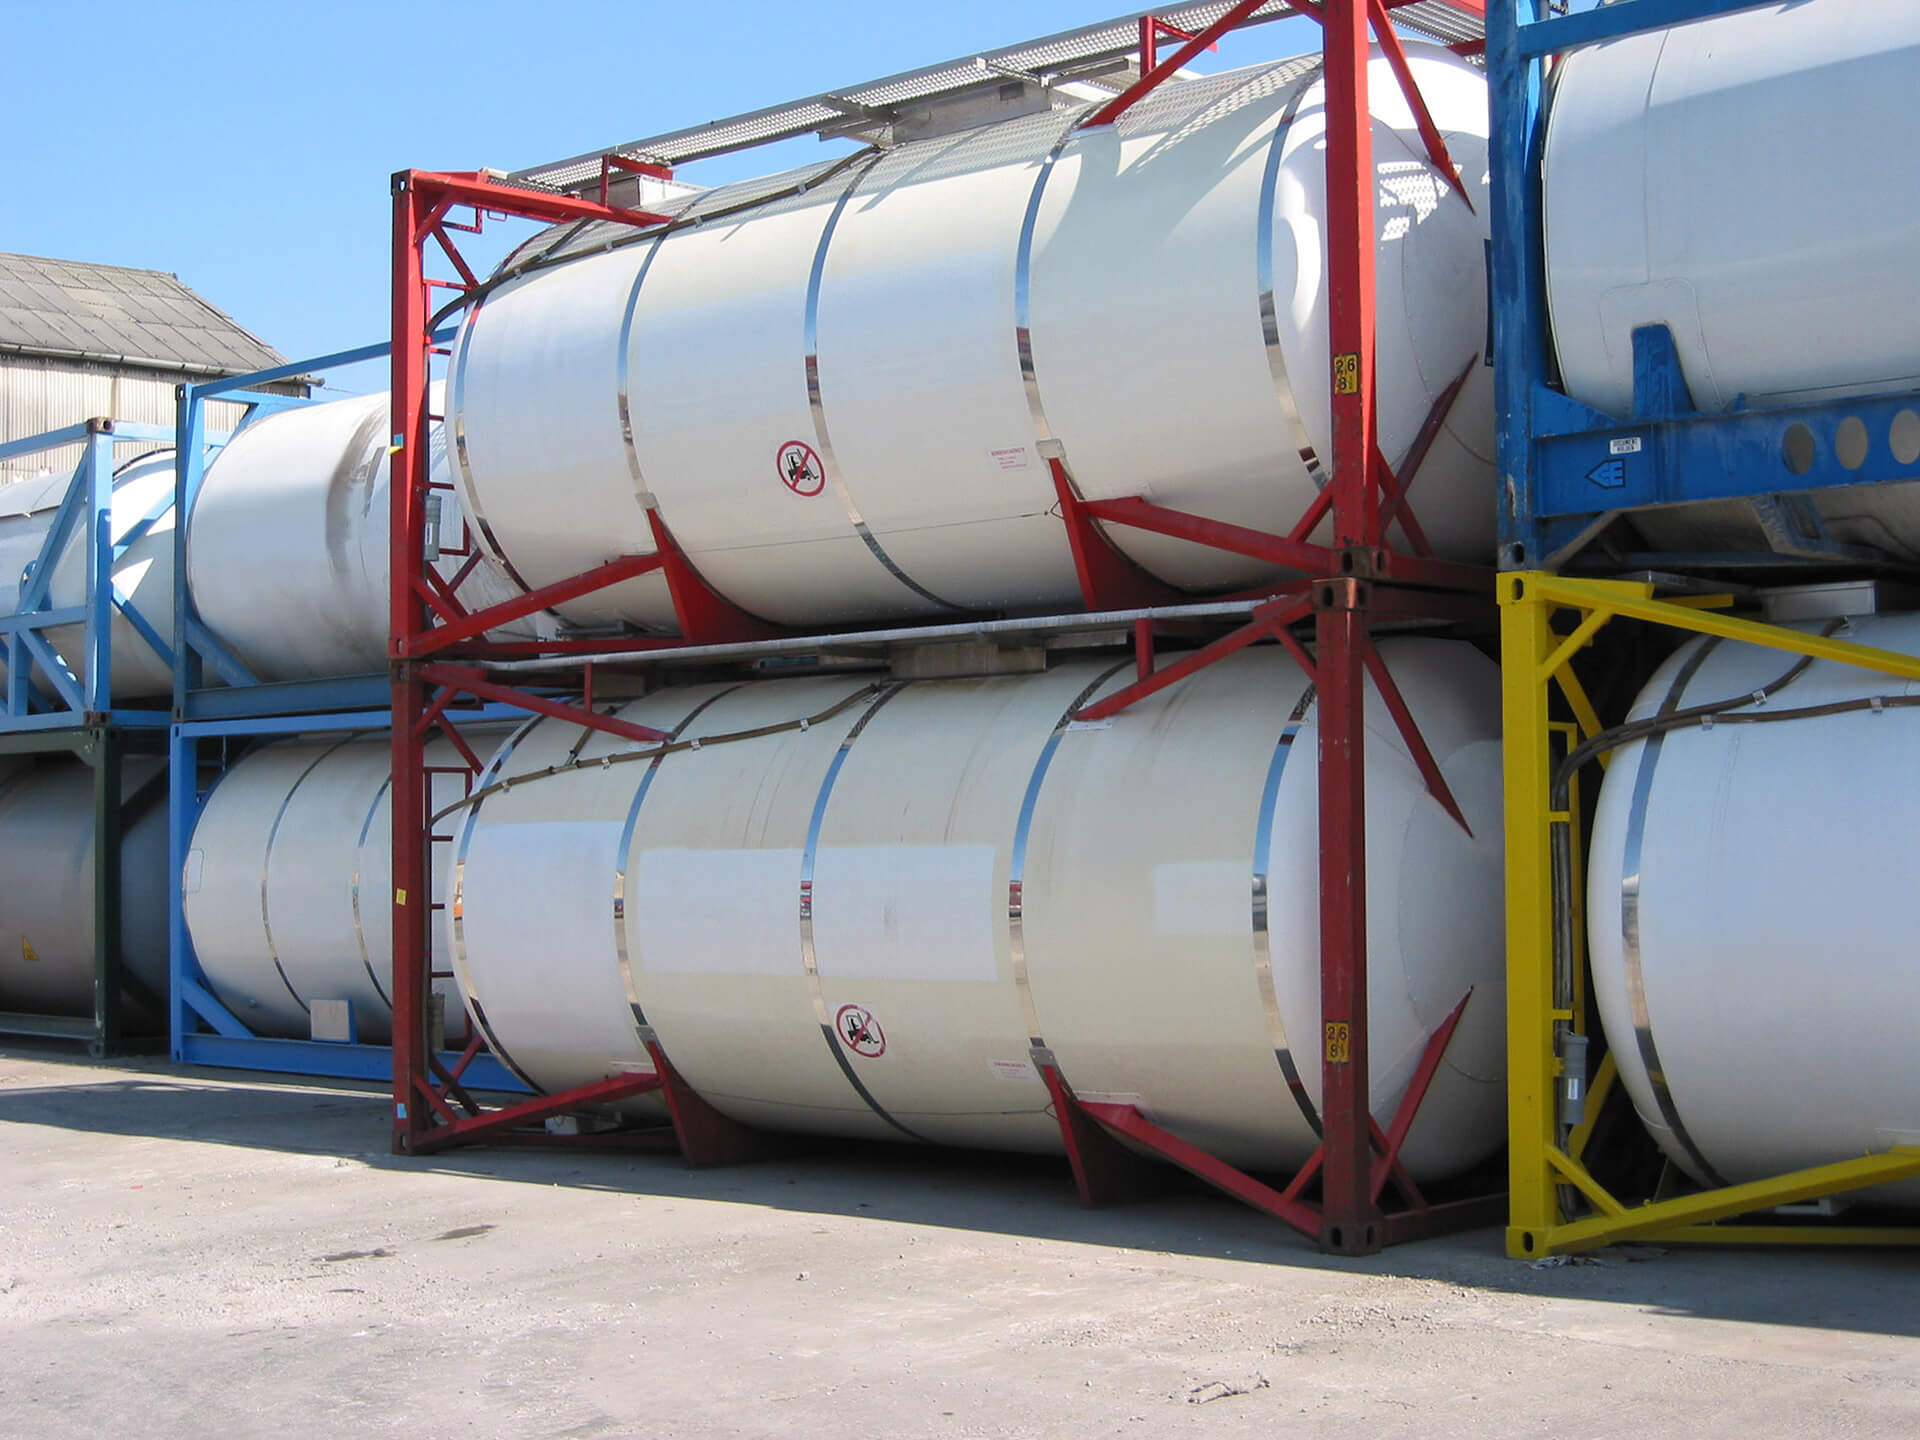 ISO Tank Containers: Usage, Components, and Safety